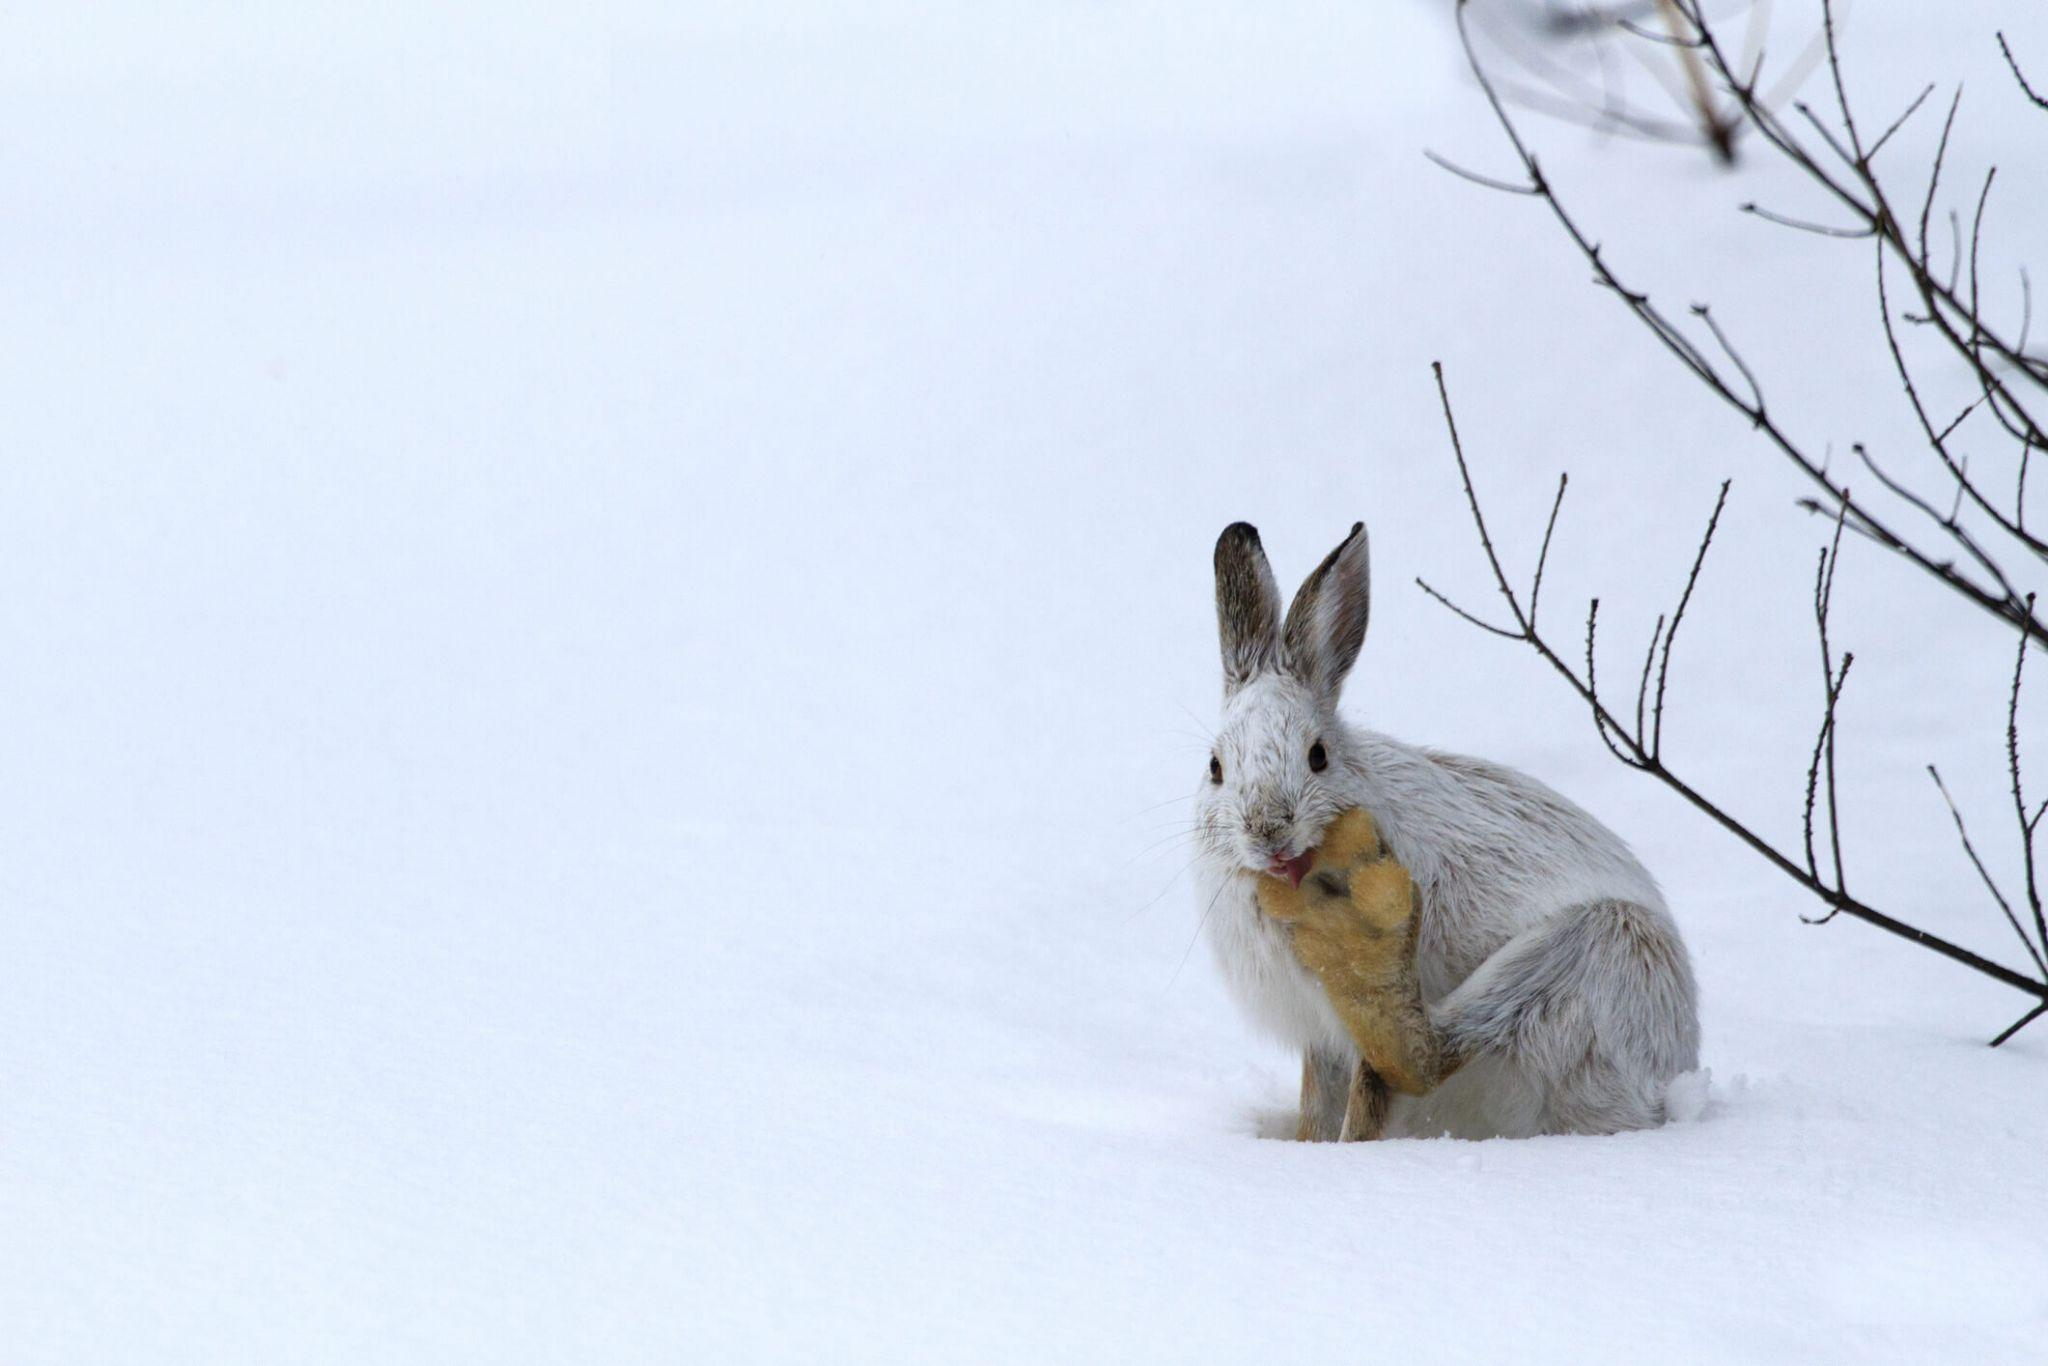 A snowshoe hare in the snow